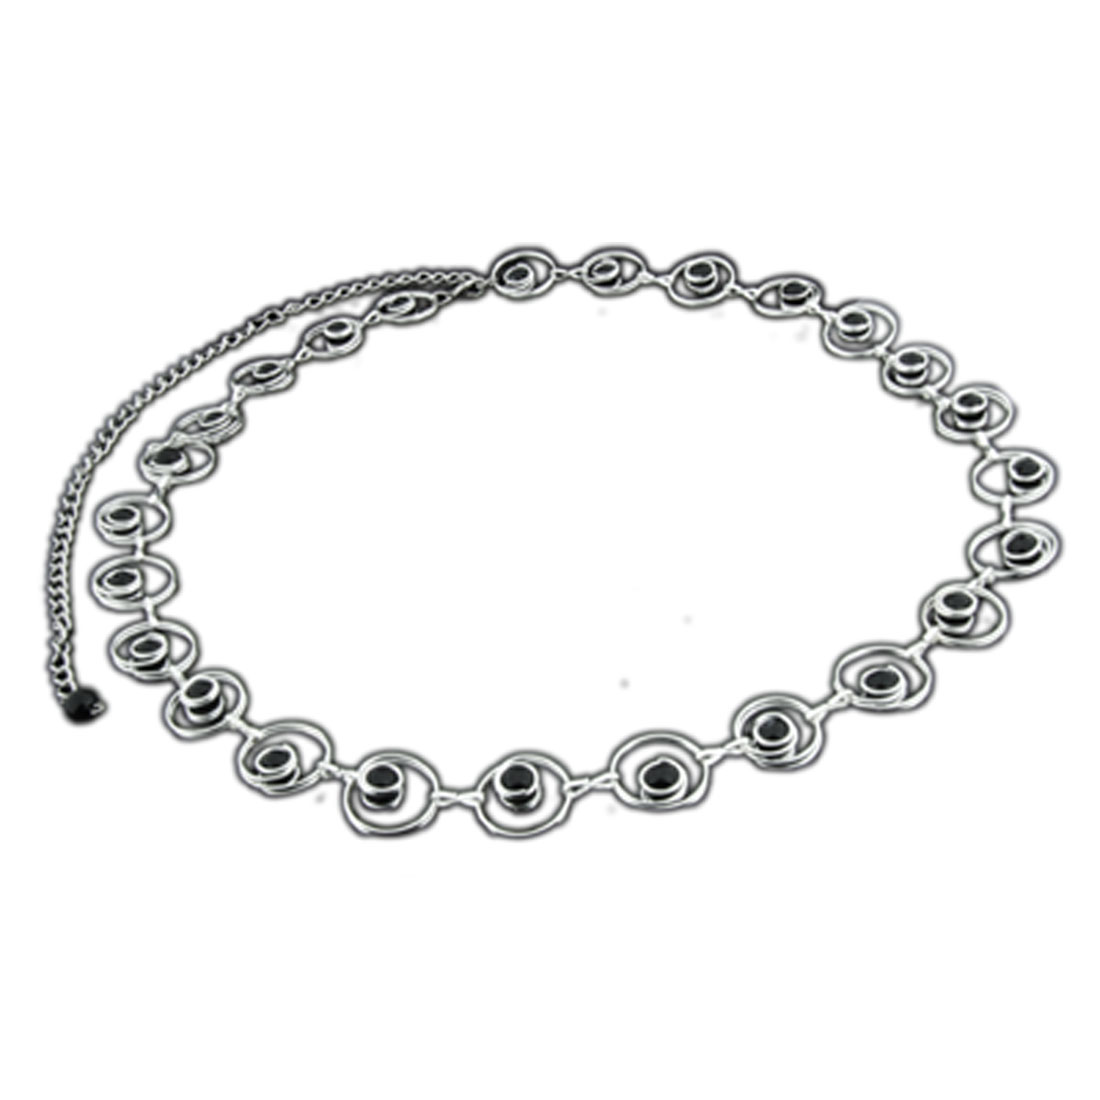 Stylish Fashion Circles Link with Black Beads Decor Ladies Belt Chain